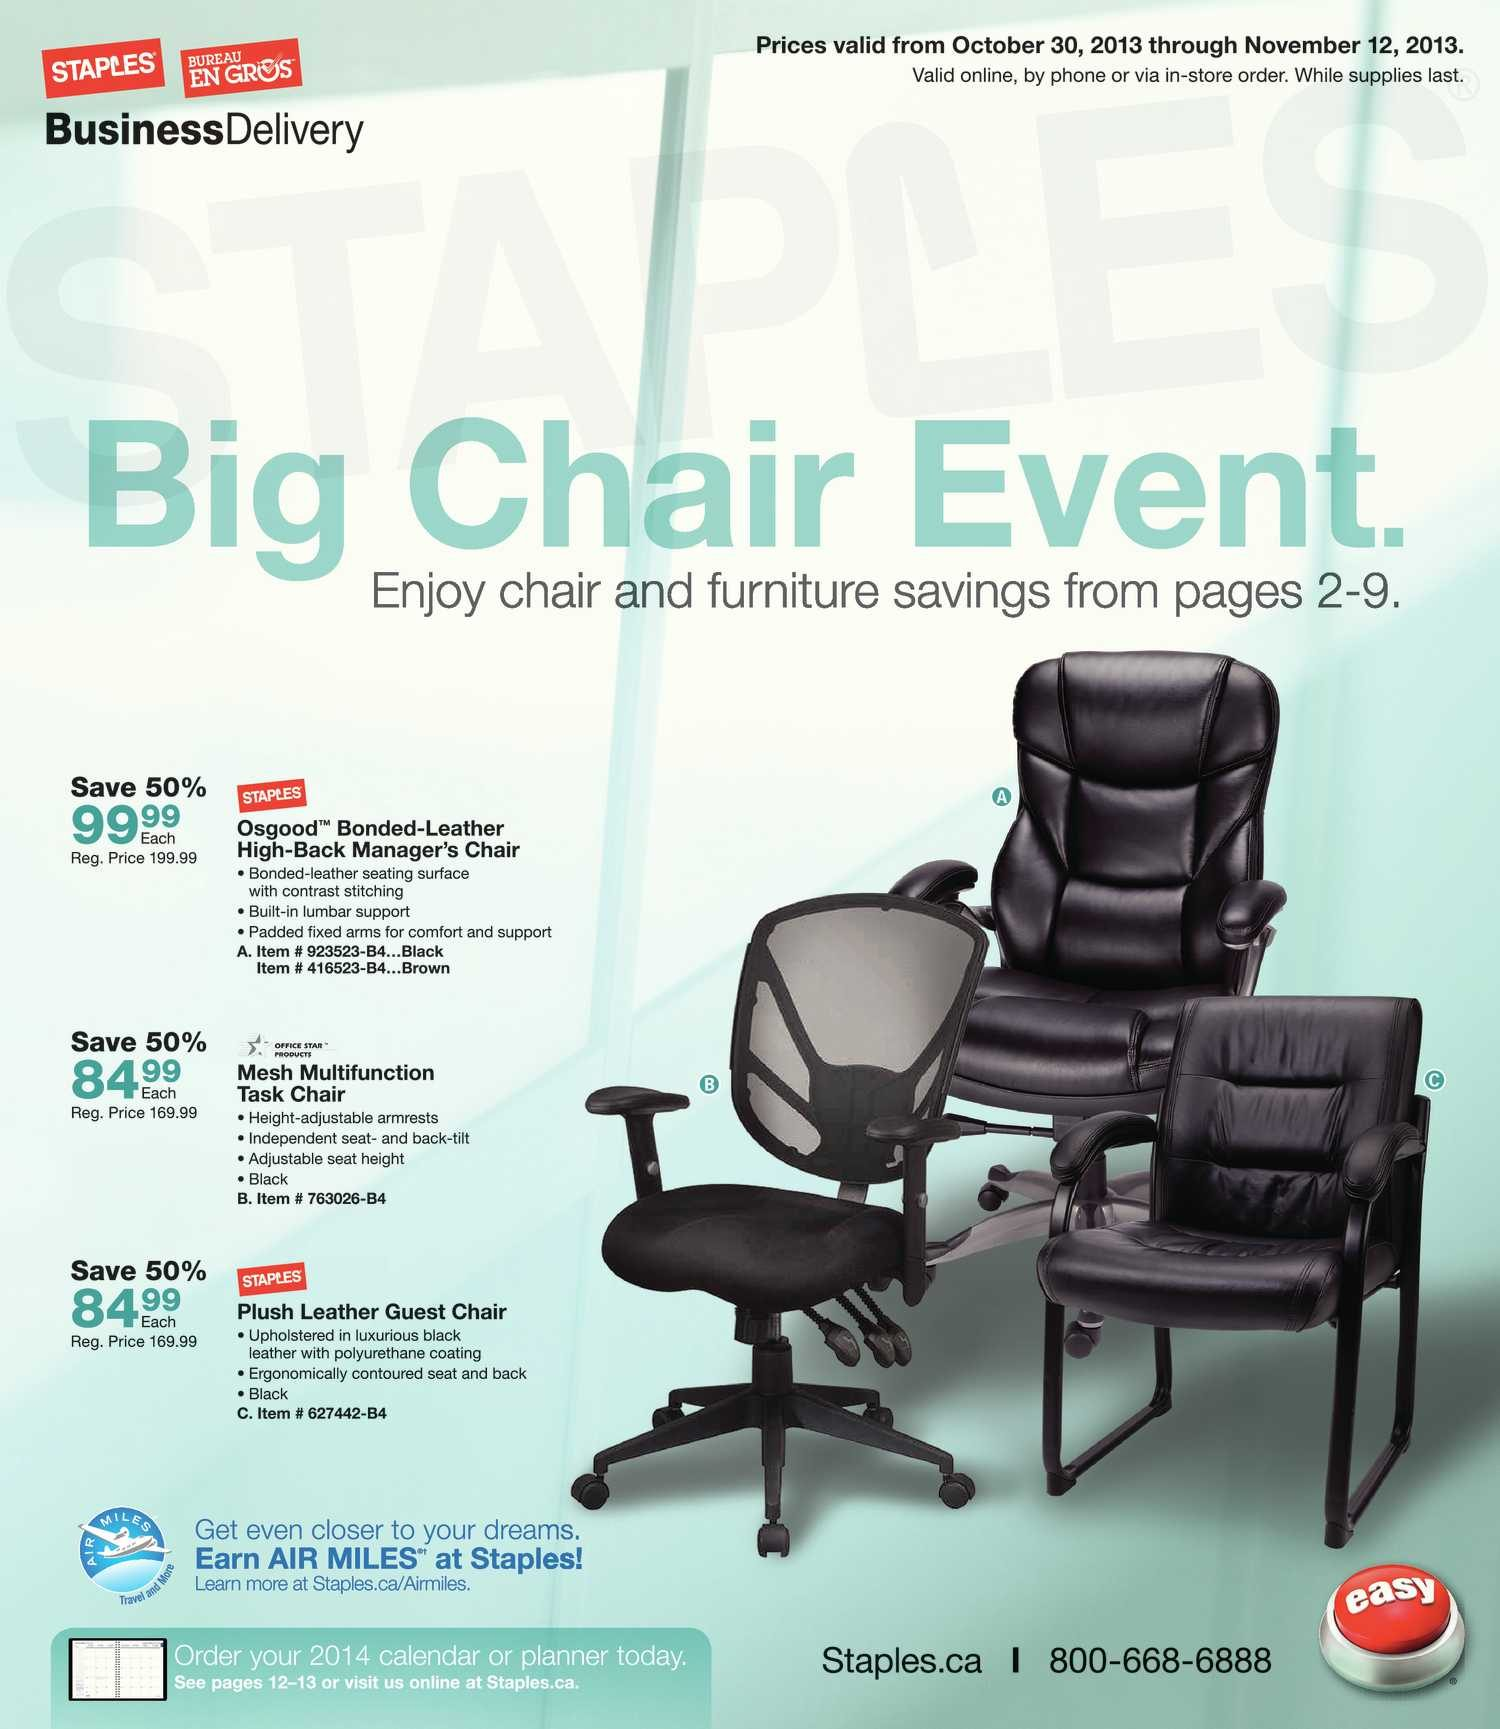 Staples Weekly Flyer - Business - Big Chair Event - Oct 30 u2013 Nov 12 - RedFlagDeals.com & Staples Weekly Flyer - Business - Big Chair Event - Oct 30 u2013 Nov 12 ...